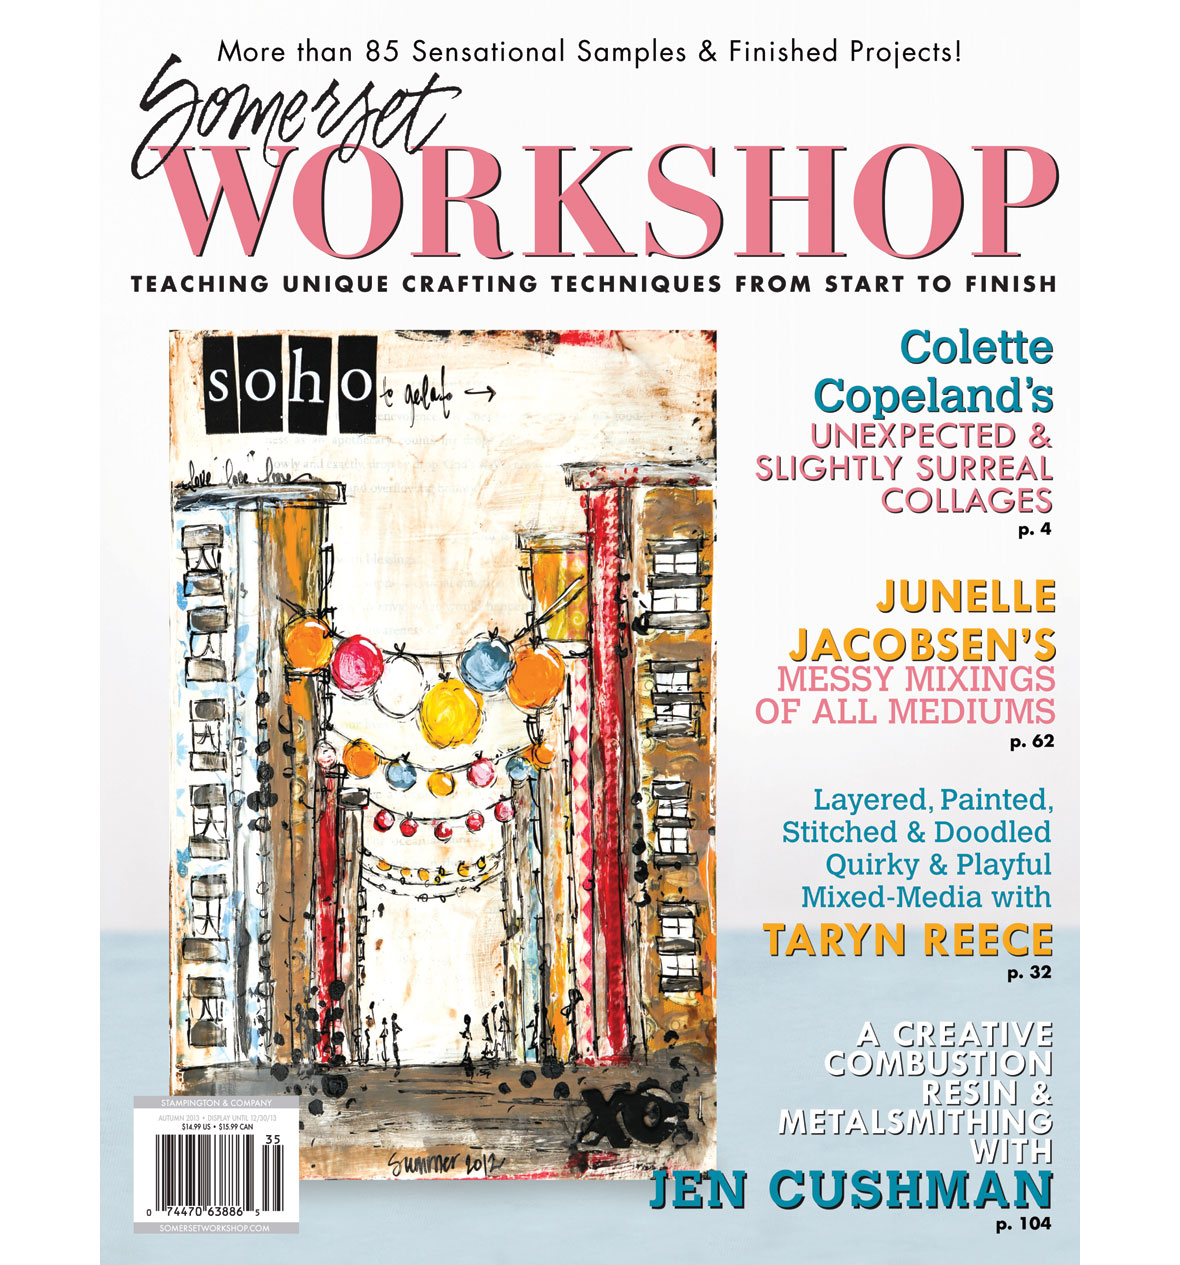 Somerset Workshop Magazine